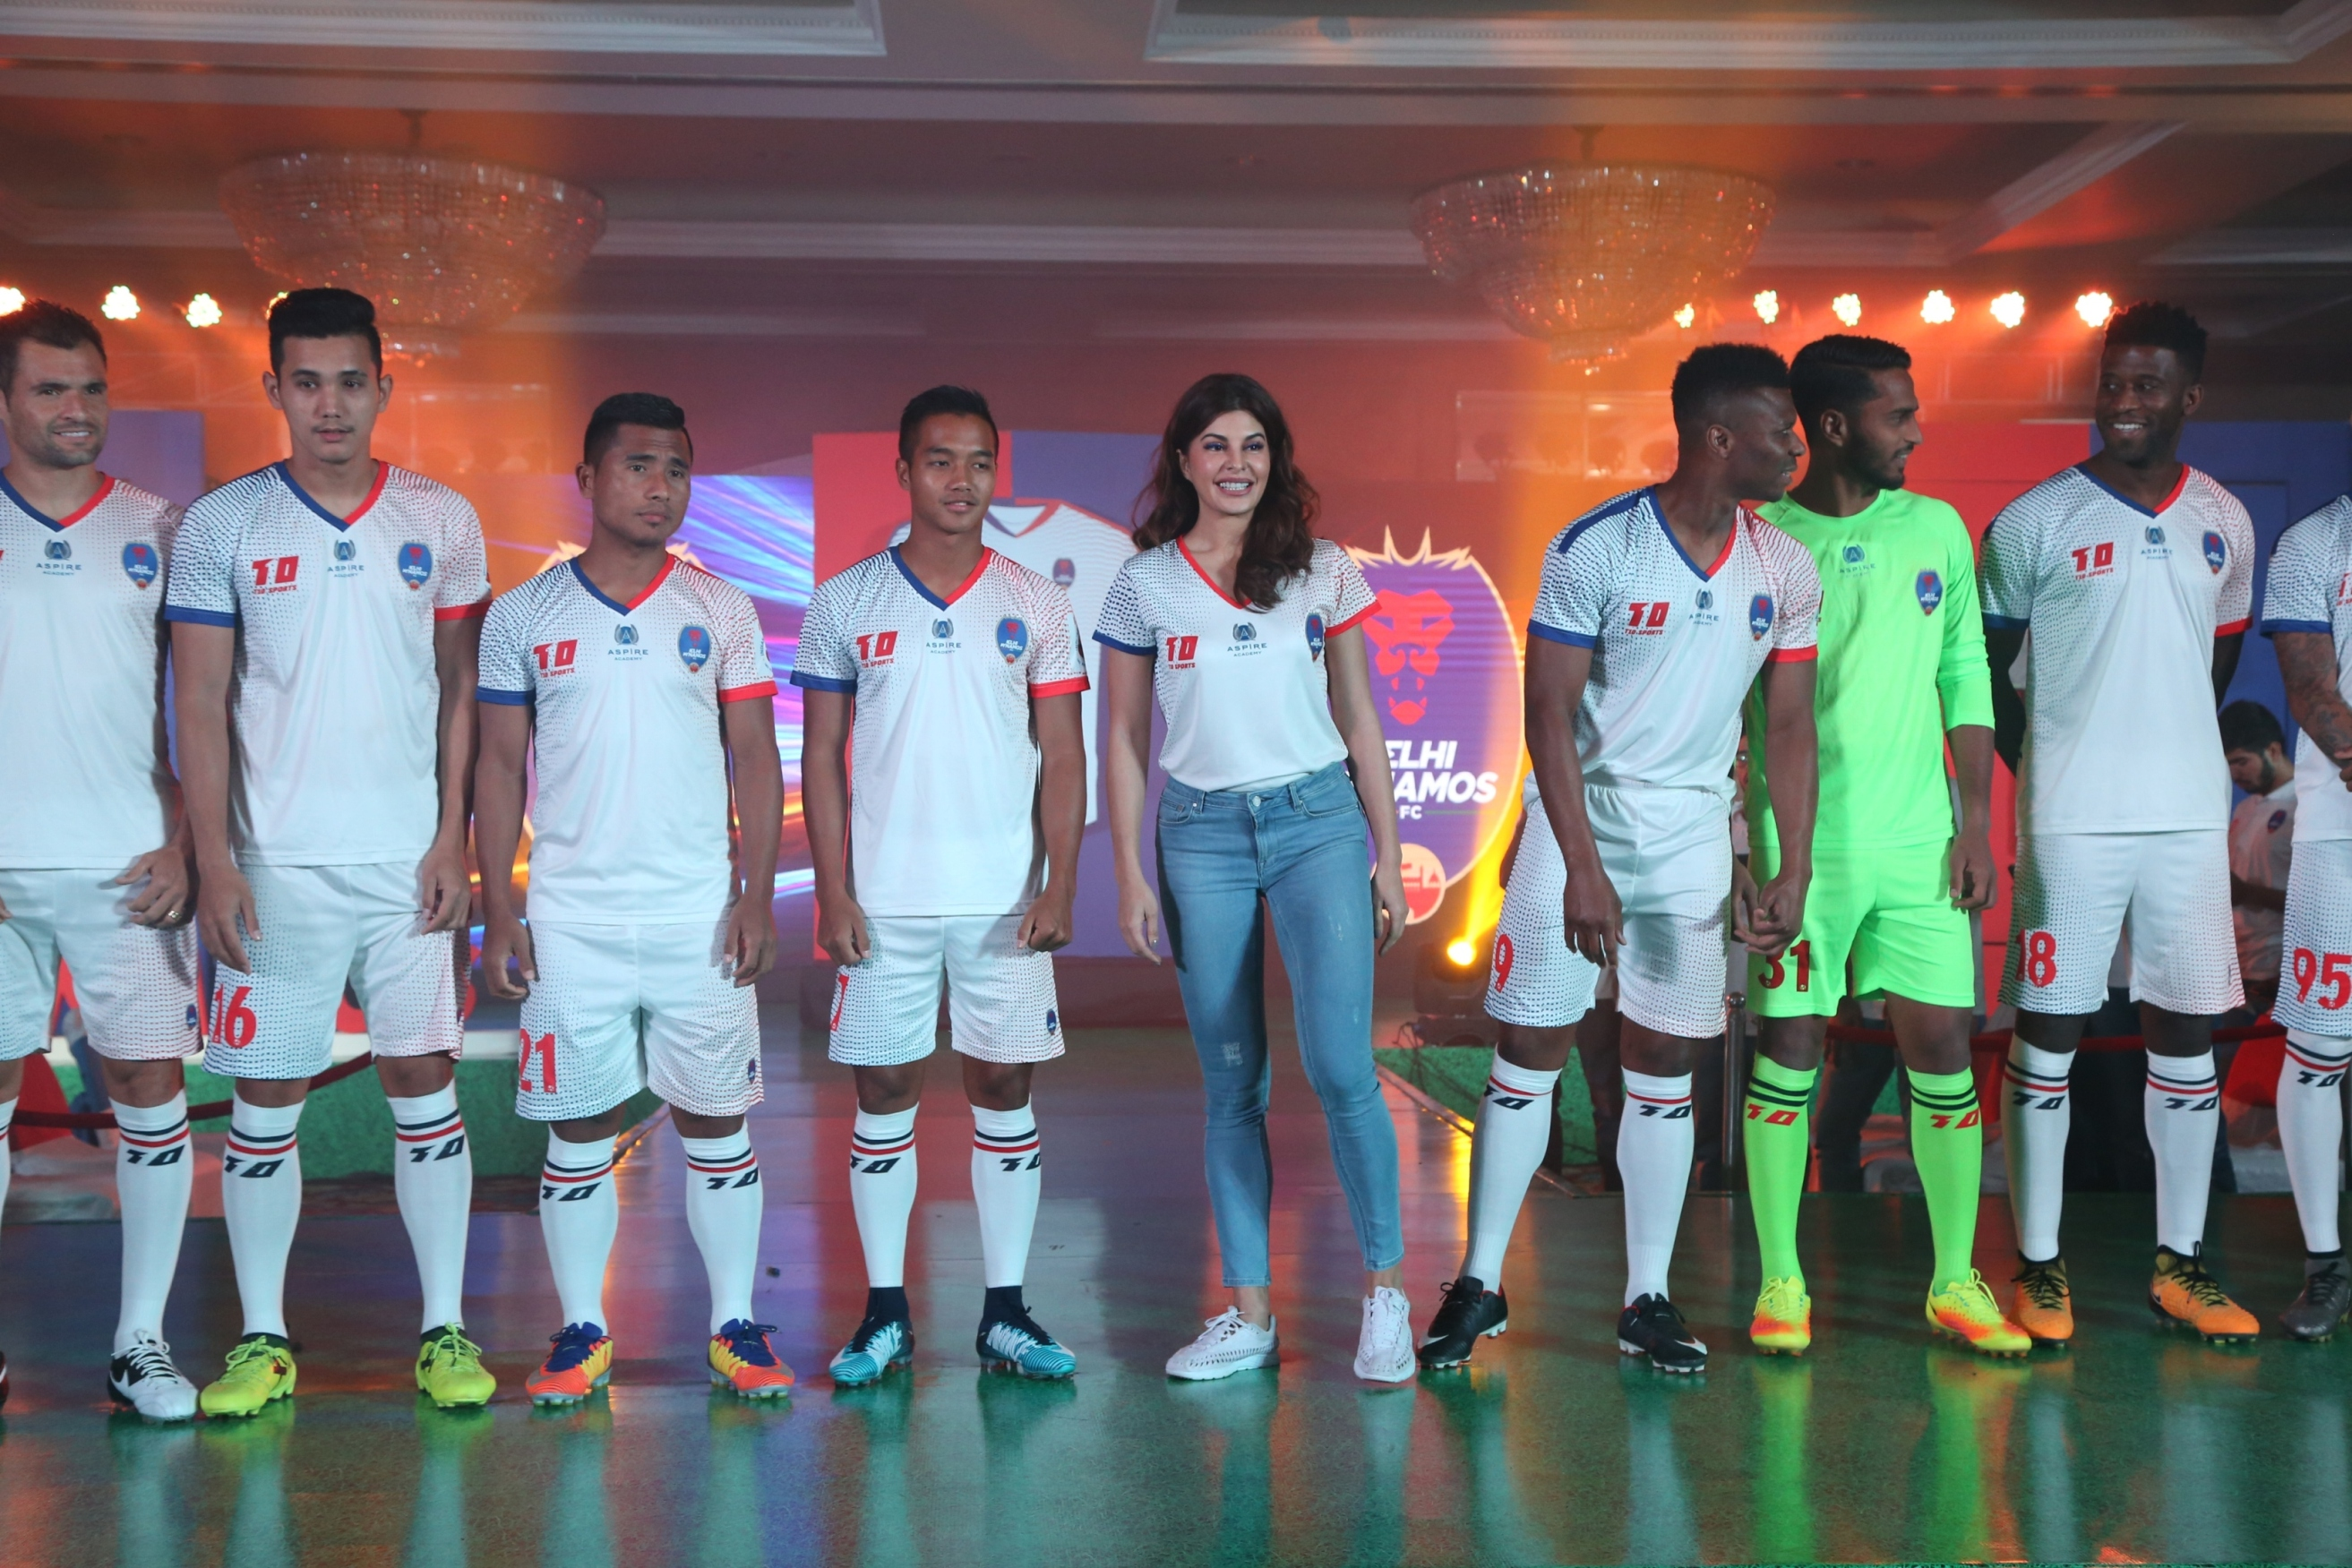 Jacqueline Fernandez with Delhi Dynamos team